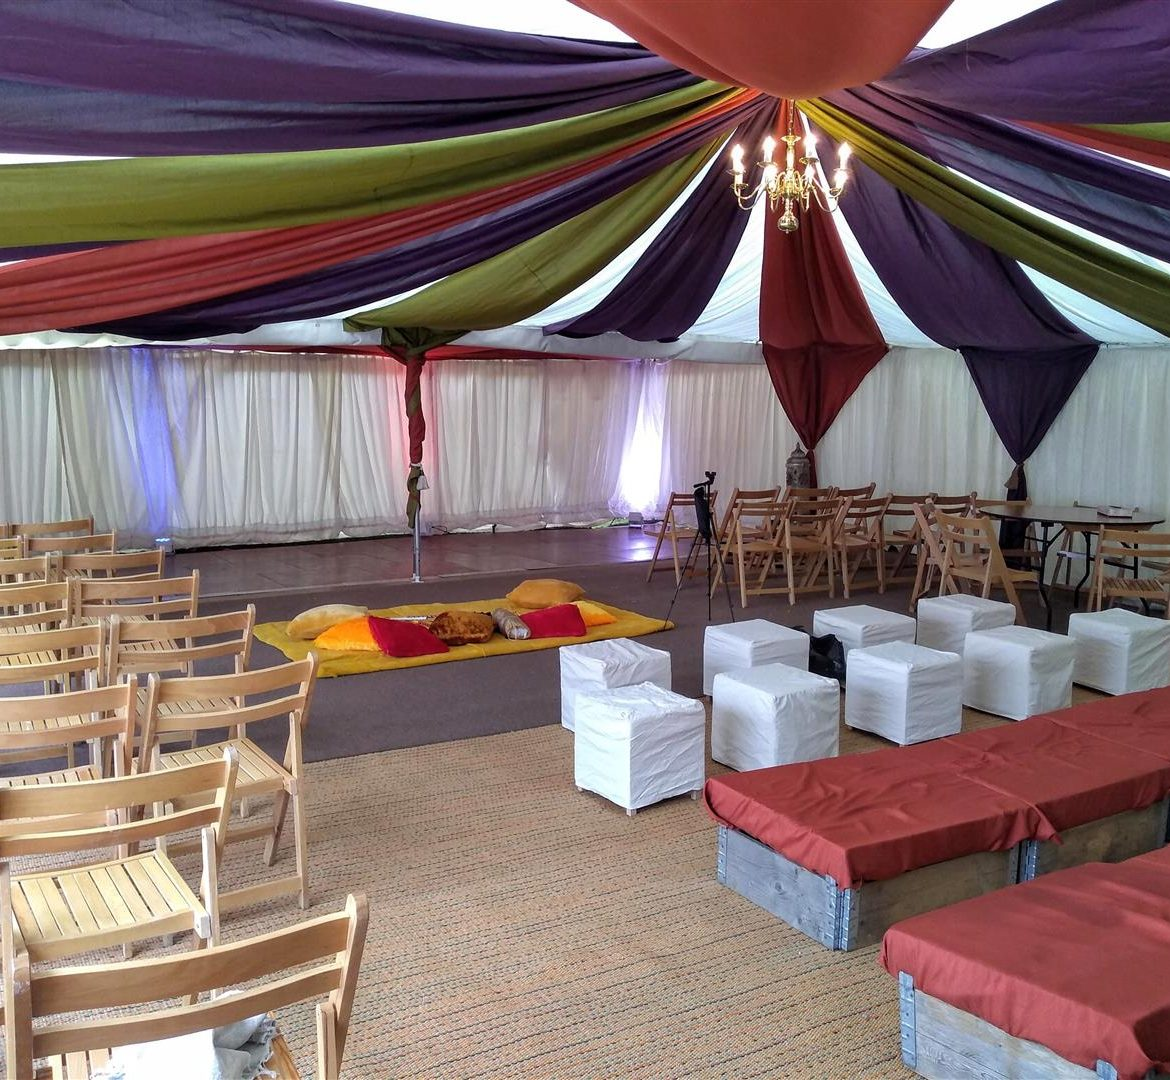 Pleated lining with coloured drapes,30x40ft Modular frame tent